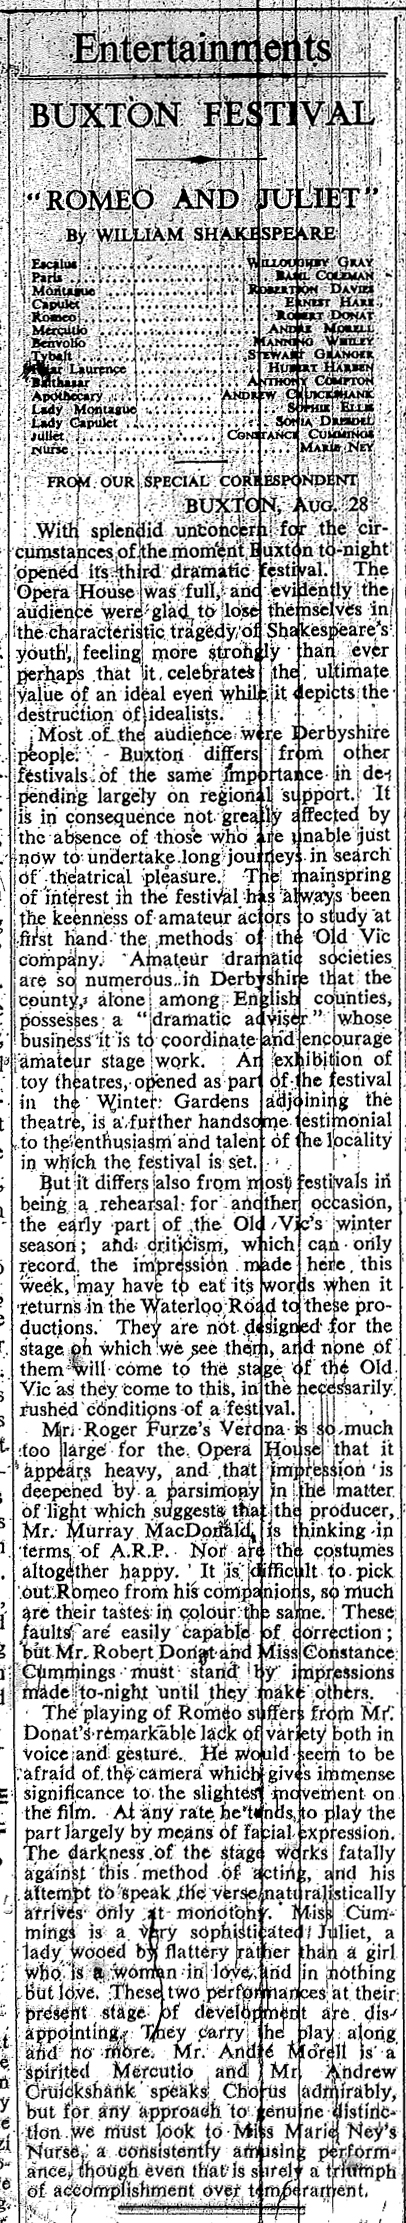 The Times 29-8-39 Page 8